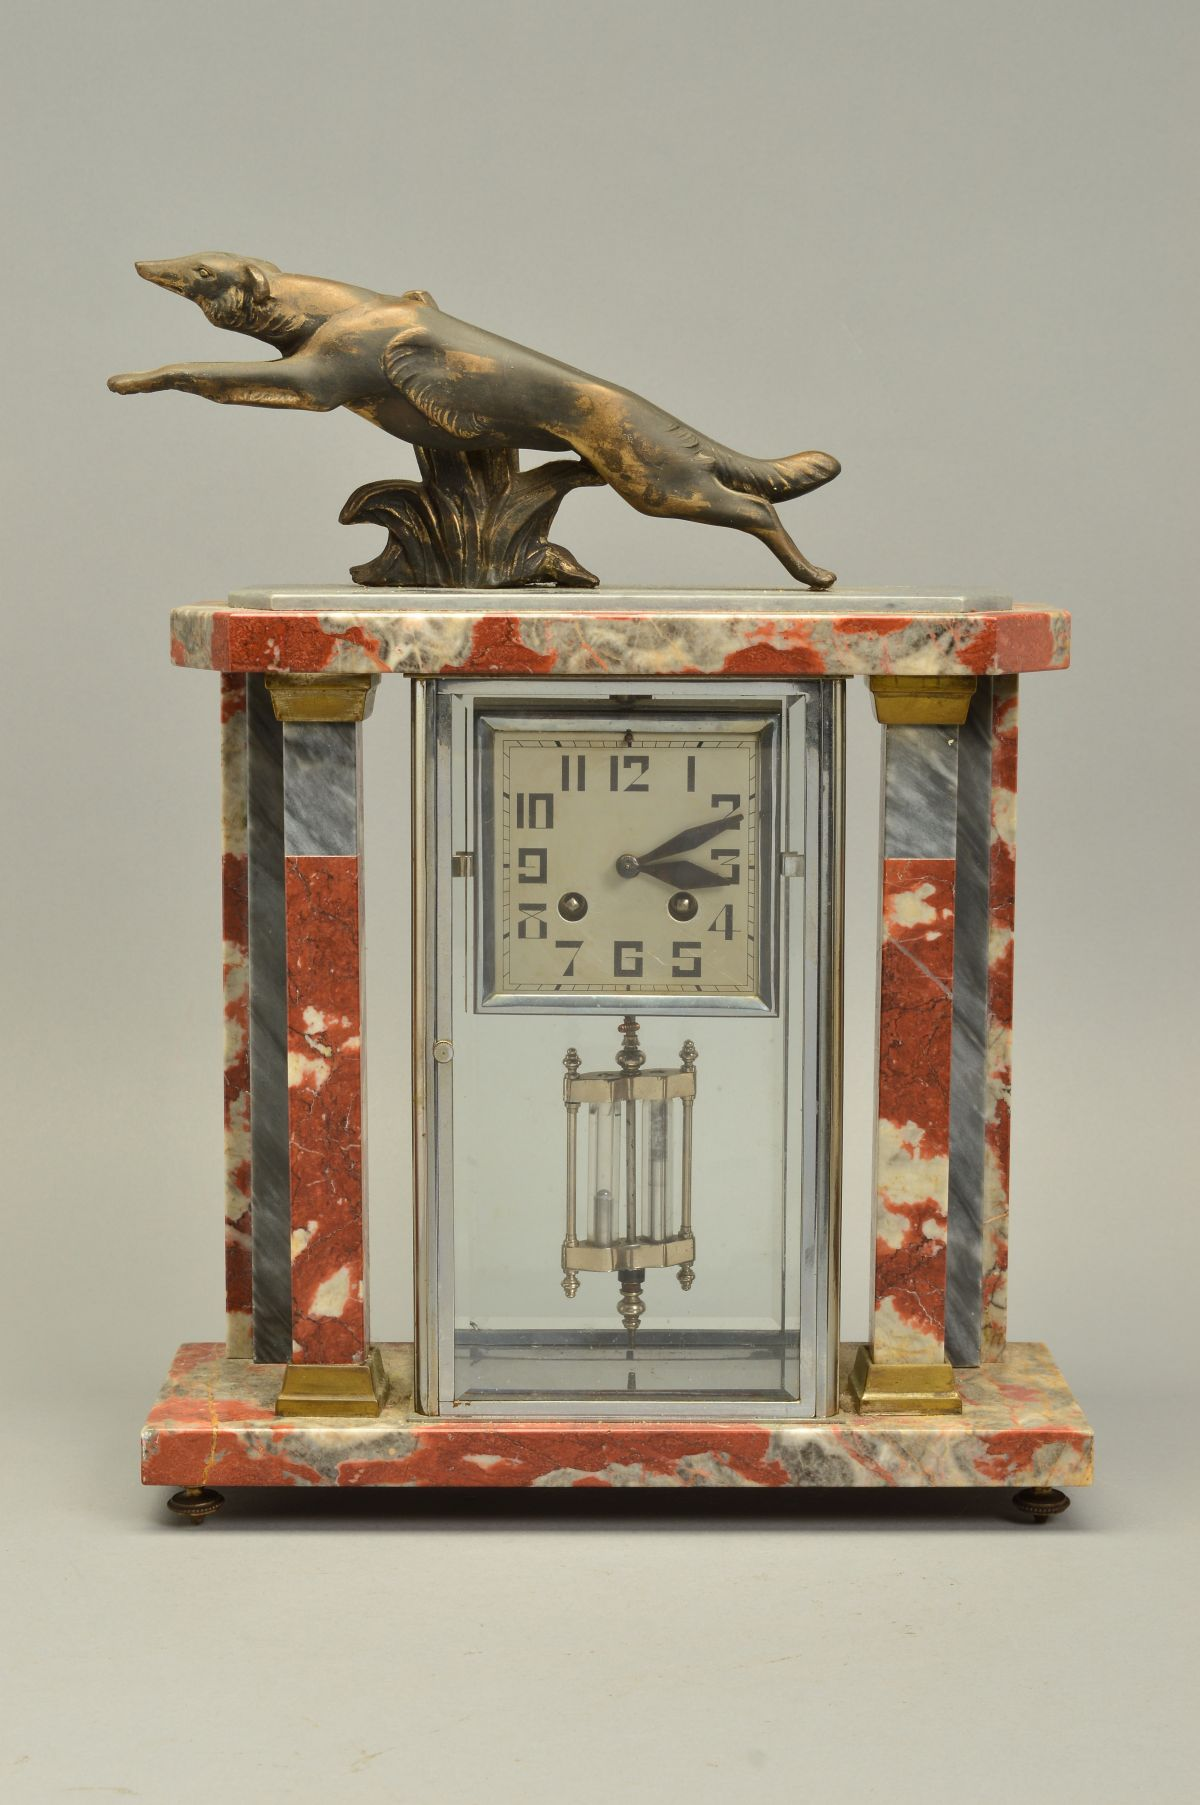 Lot 272 - A FRENCH ART DECO MARBLE MANTEL CLOCK, surmounted by a spelter dog on a grey and orange veined